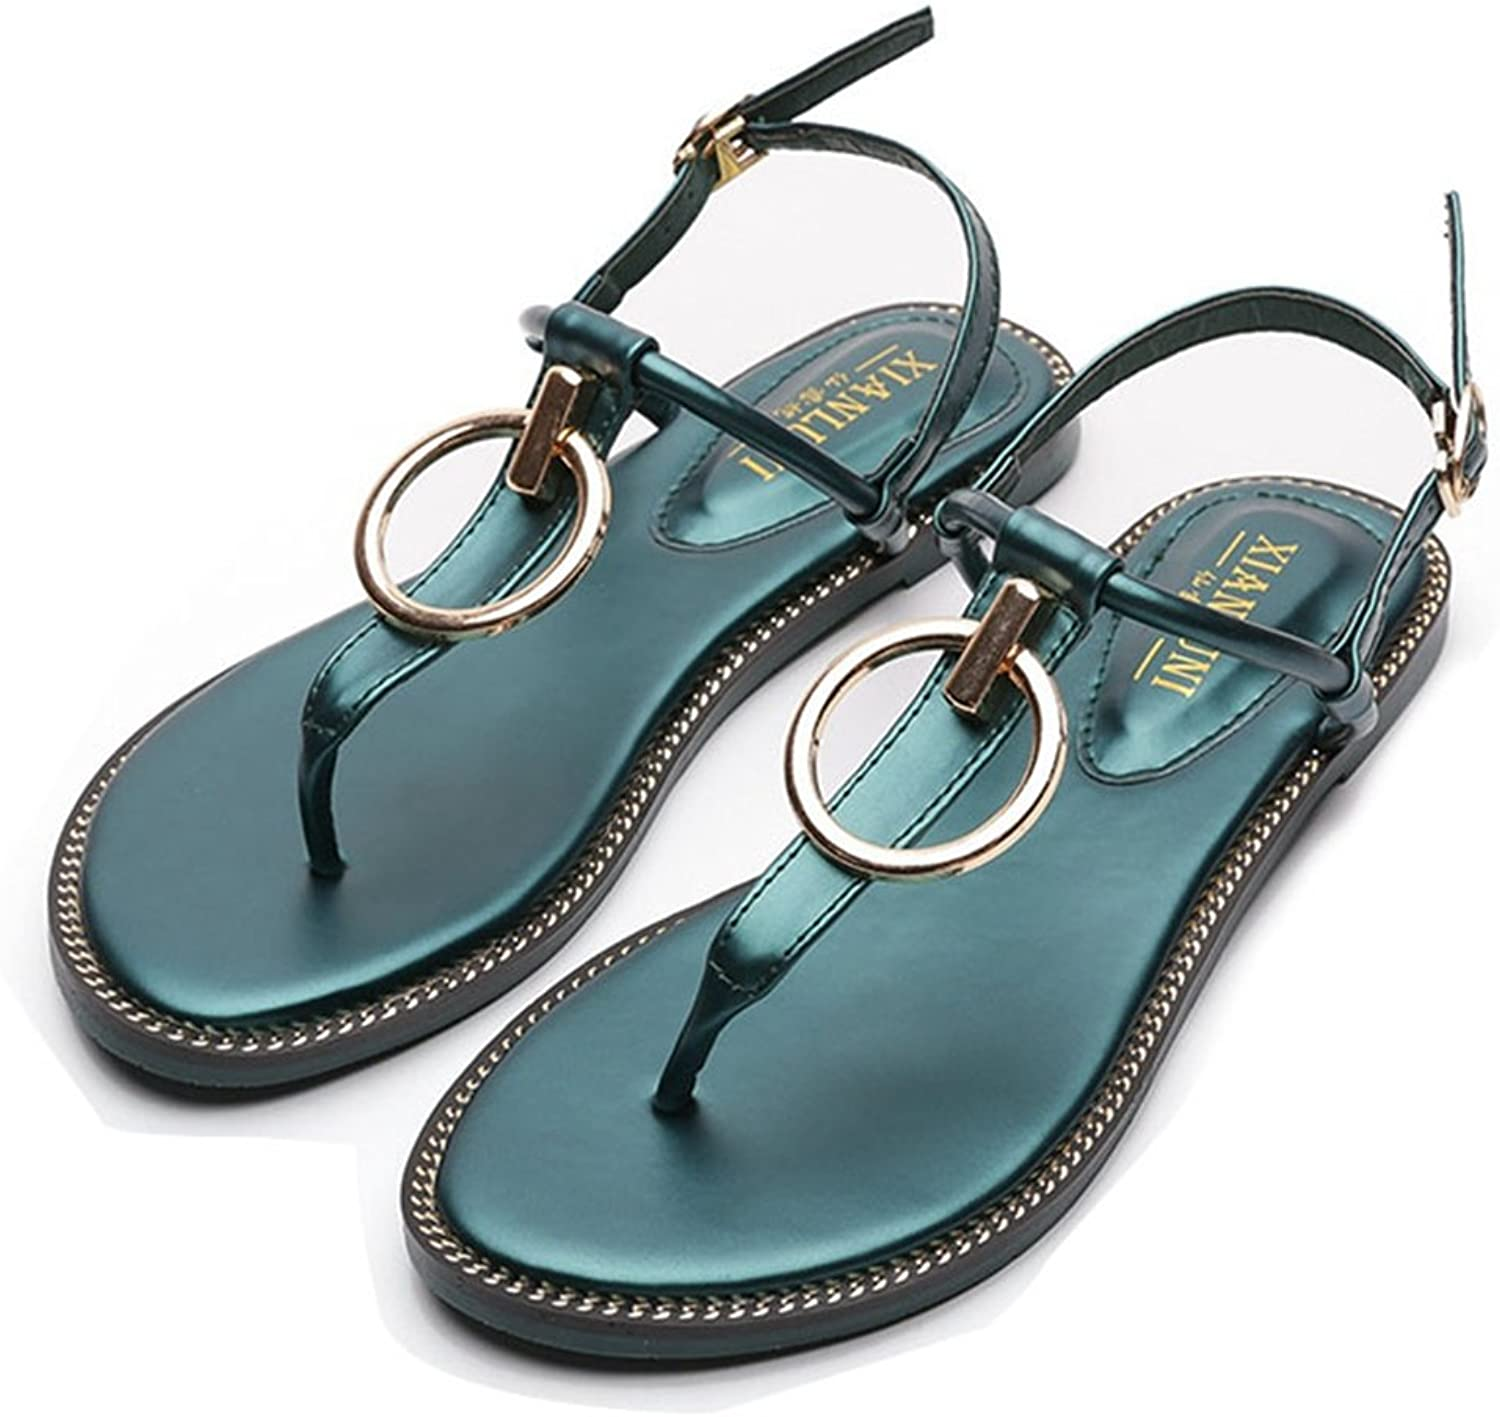 GIY Womens T-Strap Sparkly Summer Beach Thong Flat Sandals Ankle Buckle Gladiator Flip Flop Sandal Dress shoes